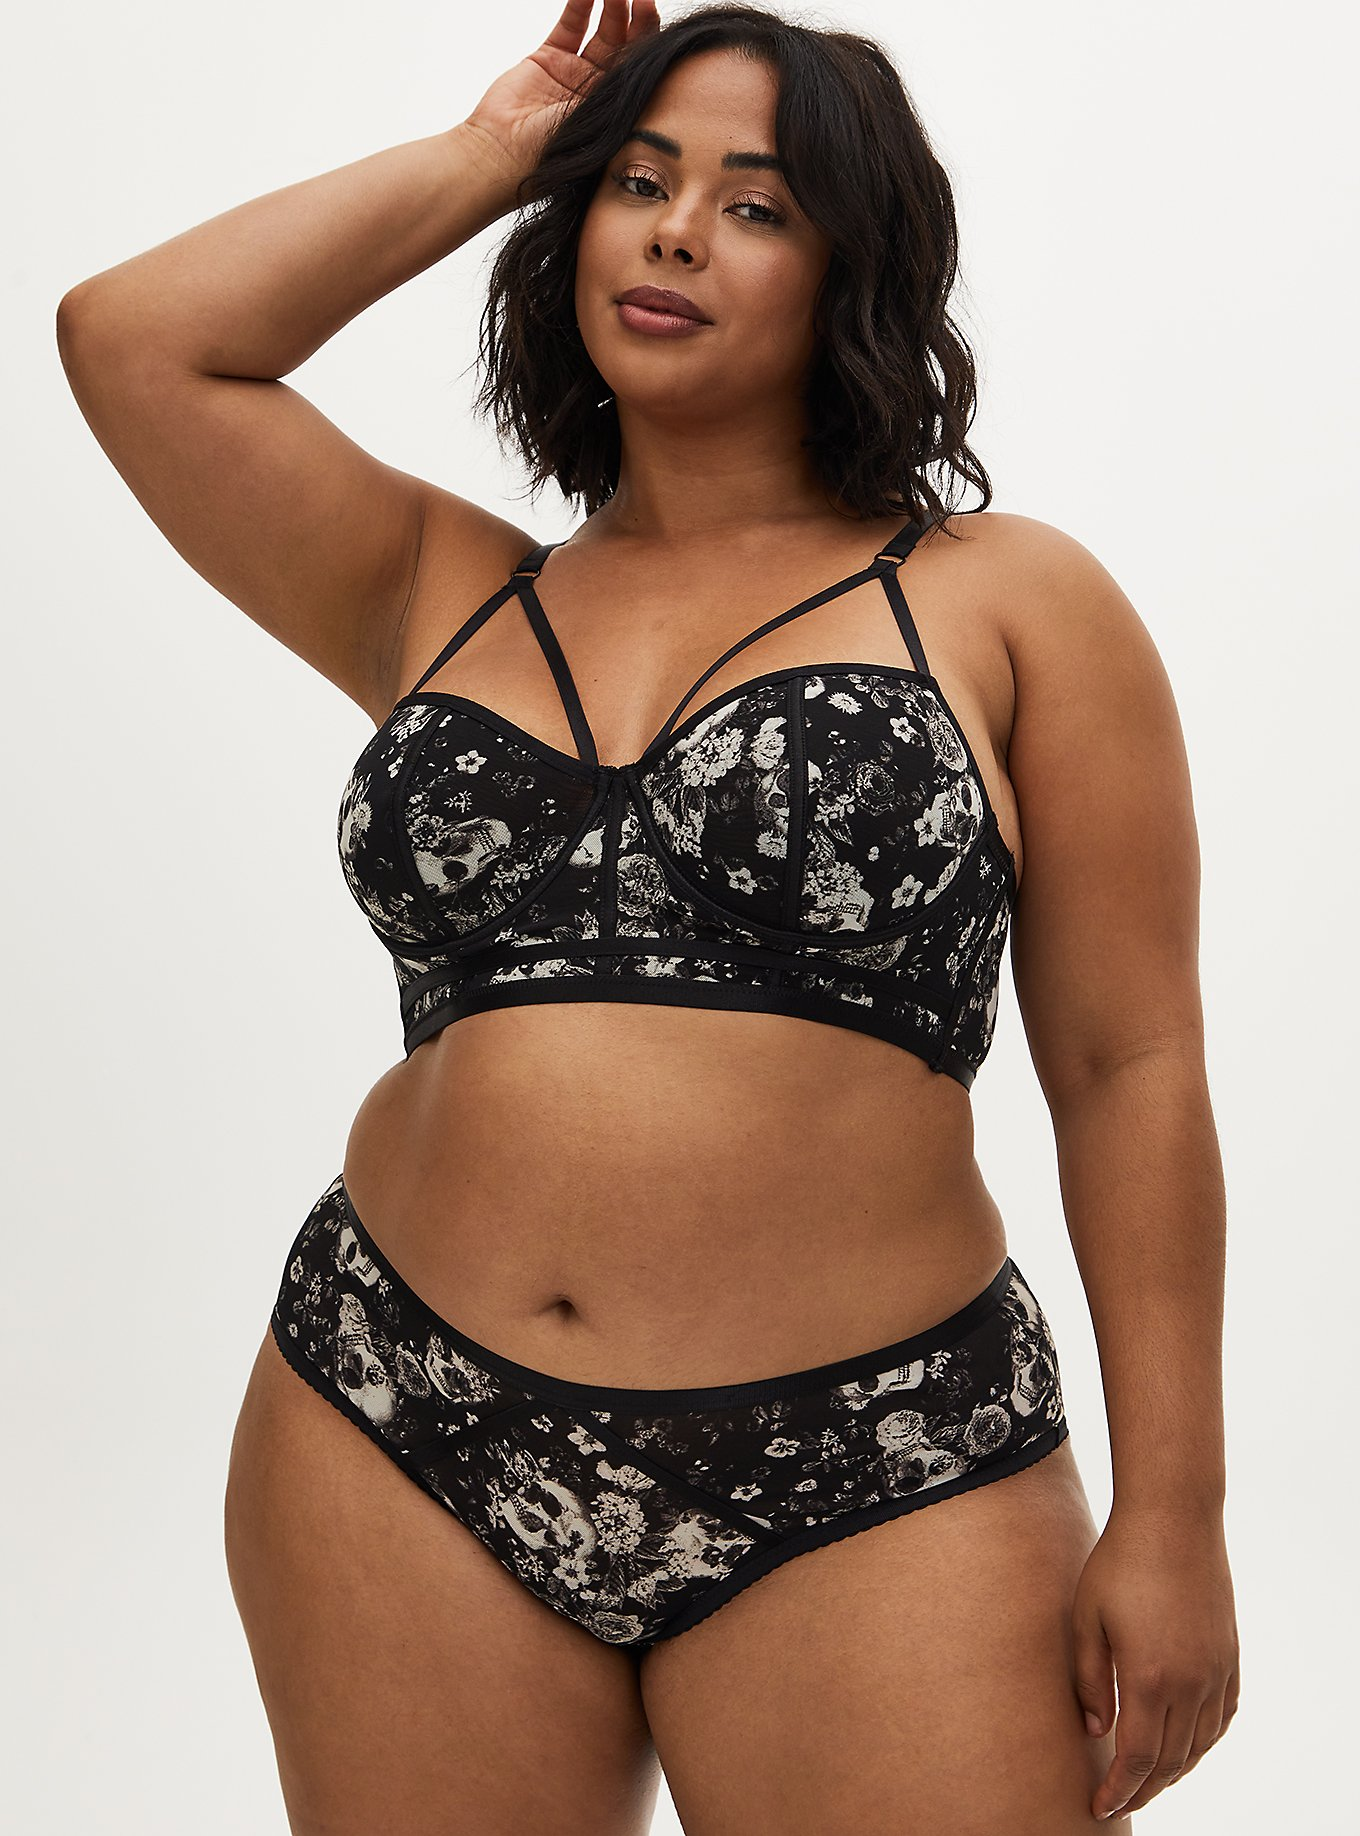 Skull Floral Power Mesh Strappy Longline Underwire Bralette and Hipster Panty, , hi-res